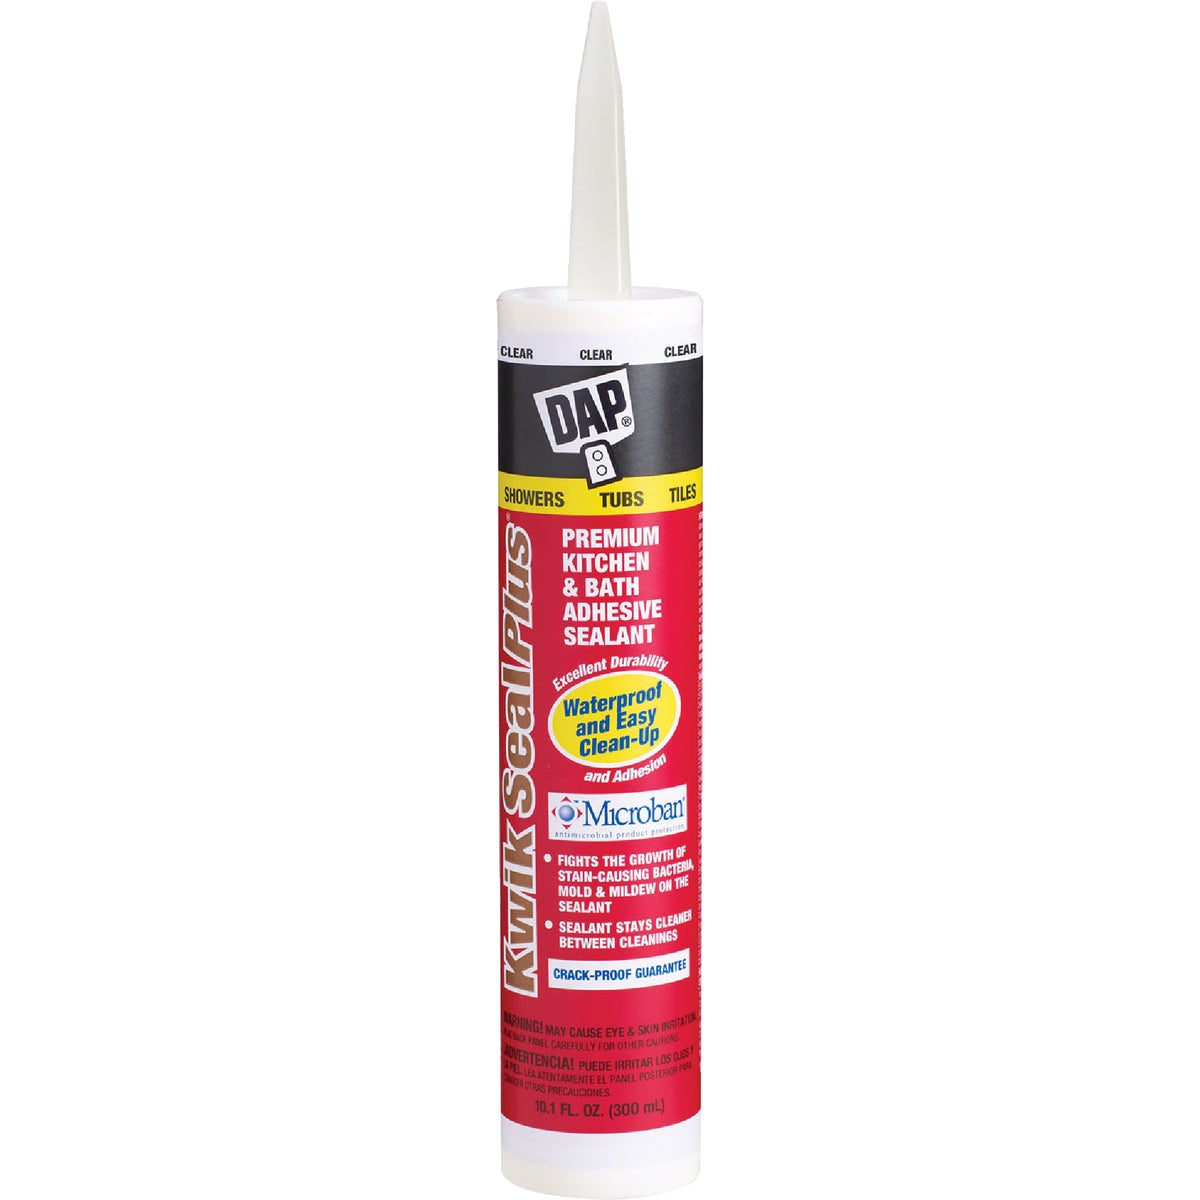 CLR KWIK-SEAL PLUS CAULK - 18516 by Dap Inc